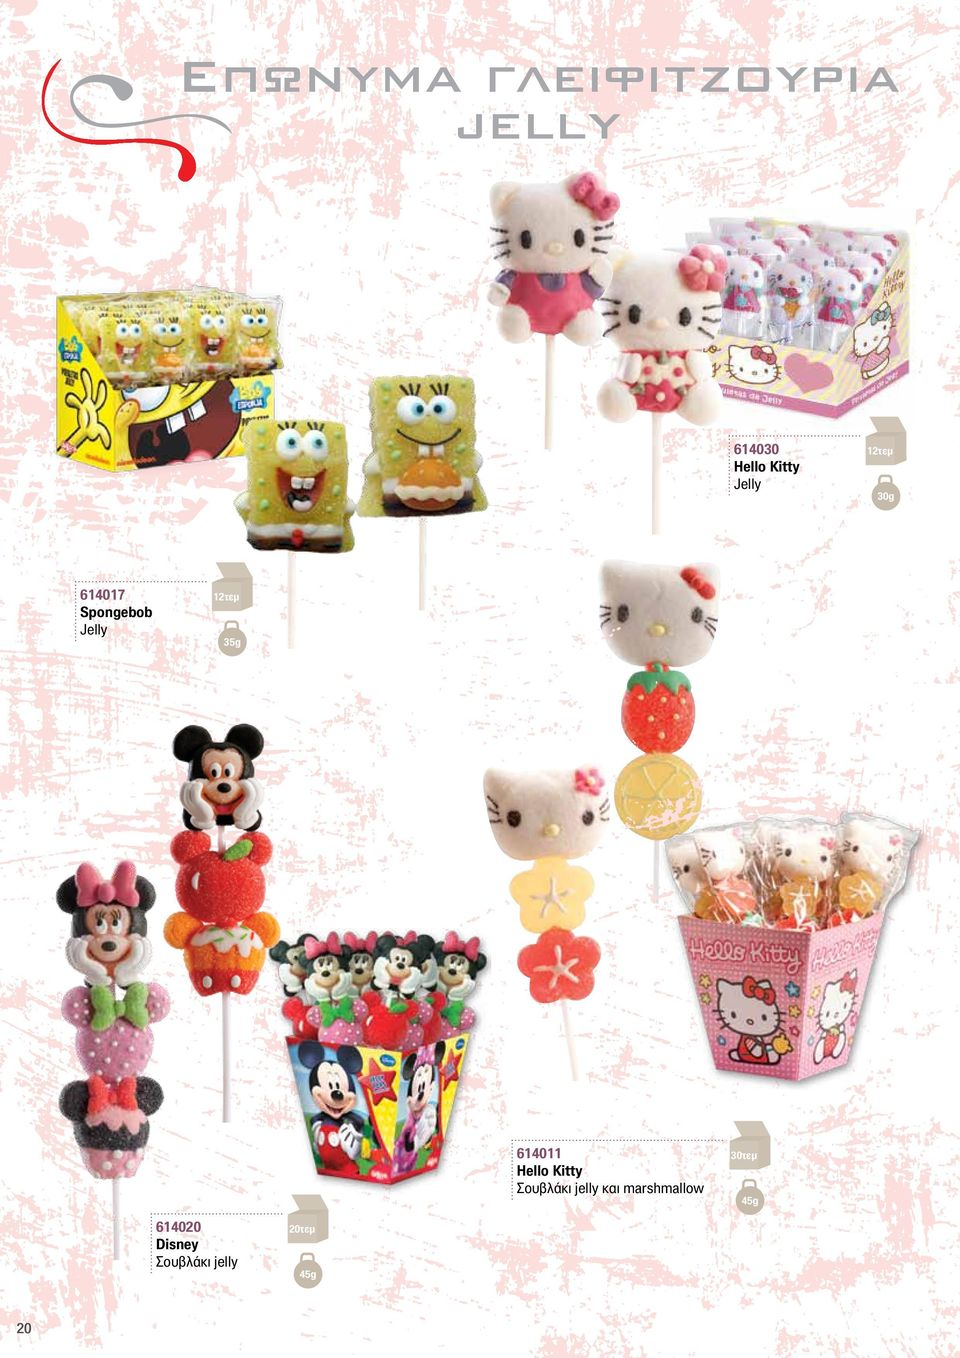 614011 Hello Kitty Σουβλάκι jelly και marshmallow